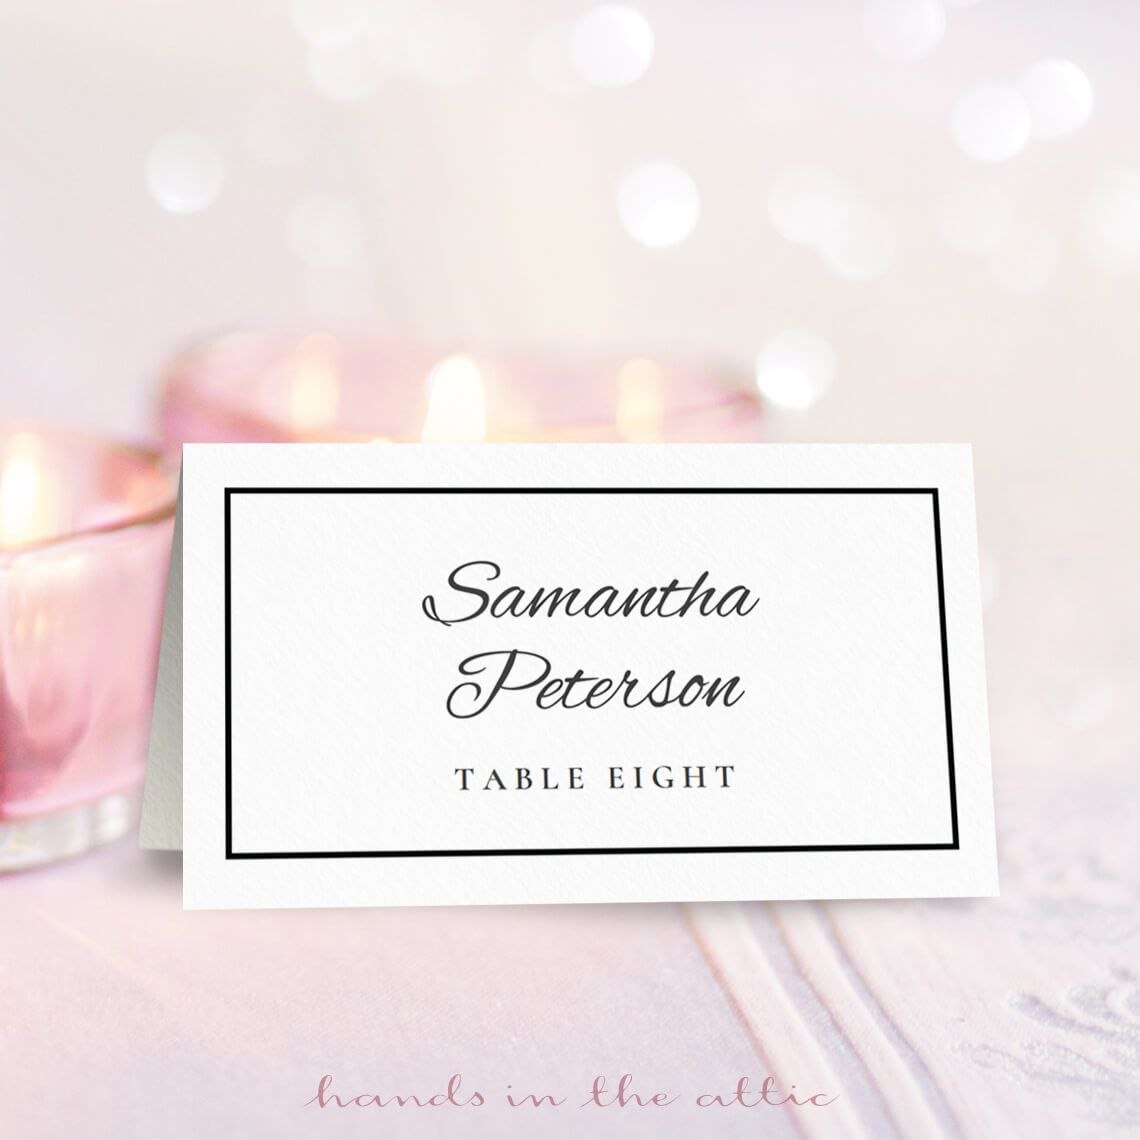 Wedding Place Card Template  Free On Handsintheattic  Free Intended For Table Place Card Template Free Download